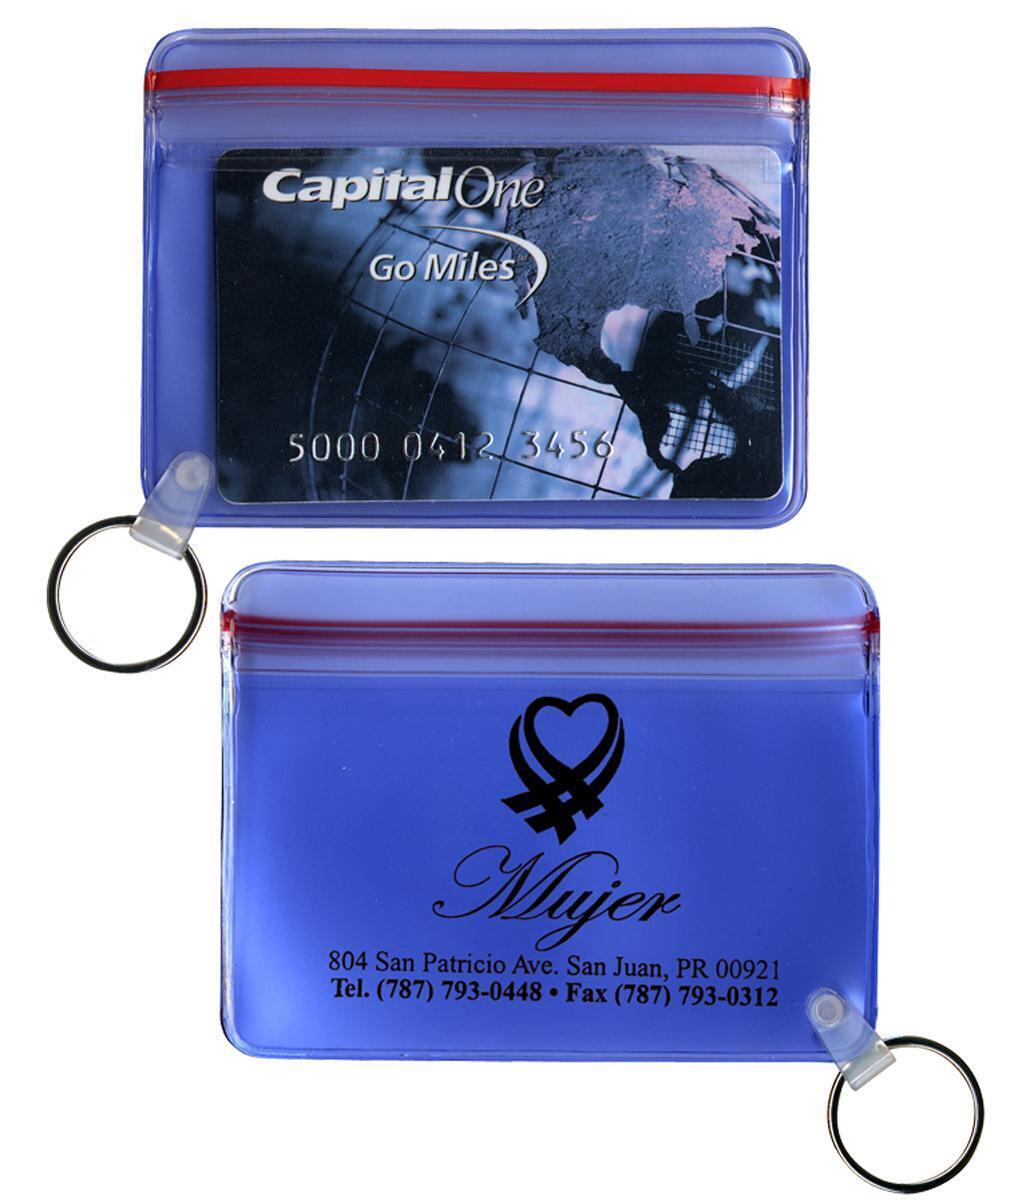 Translucent Waterproof Coin Wallet